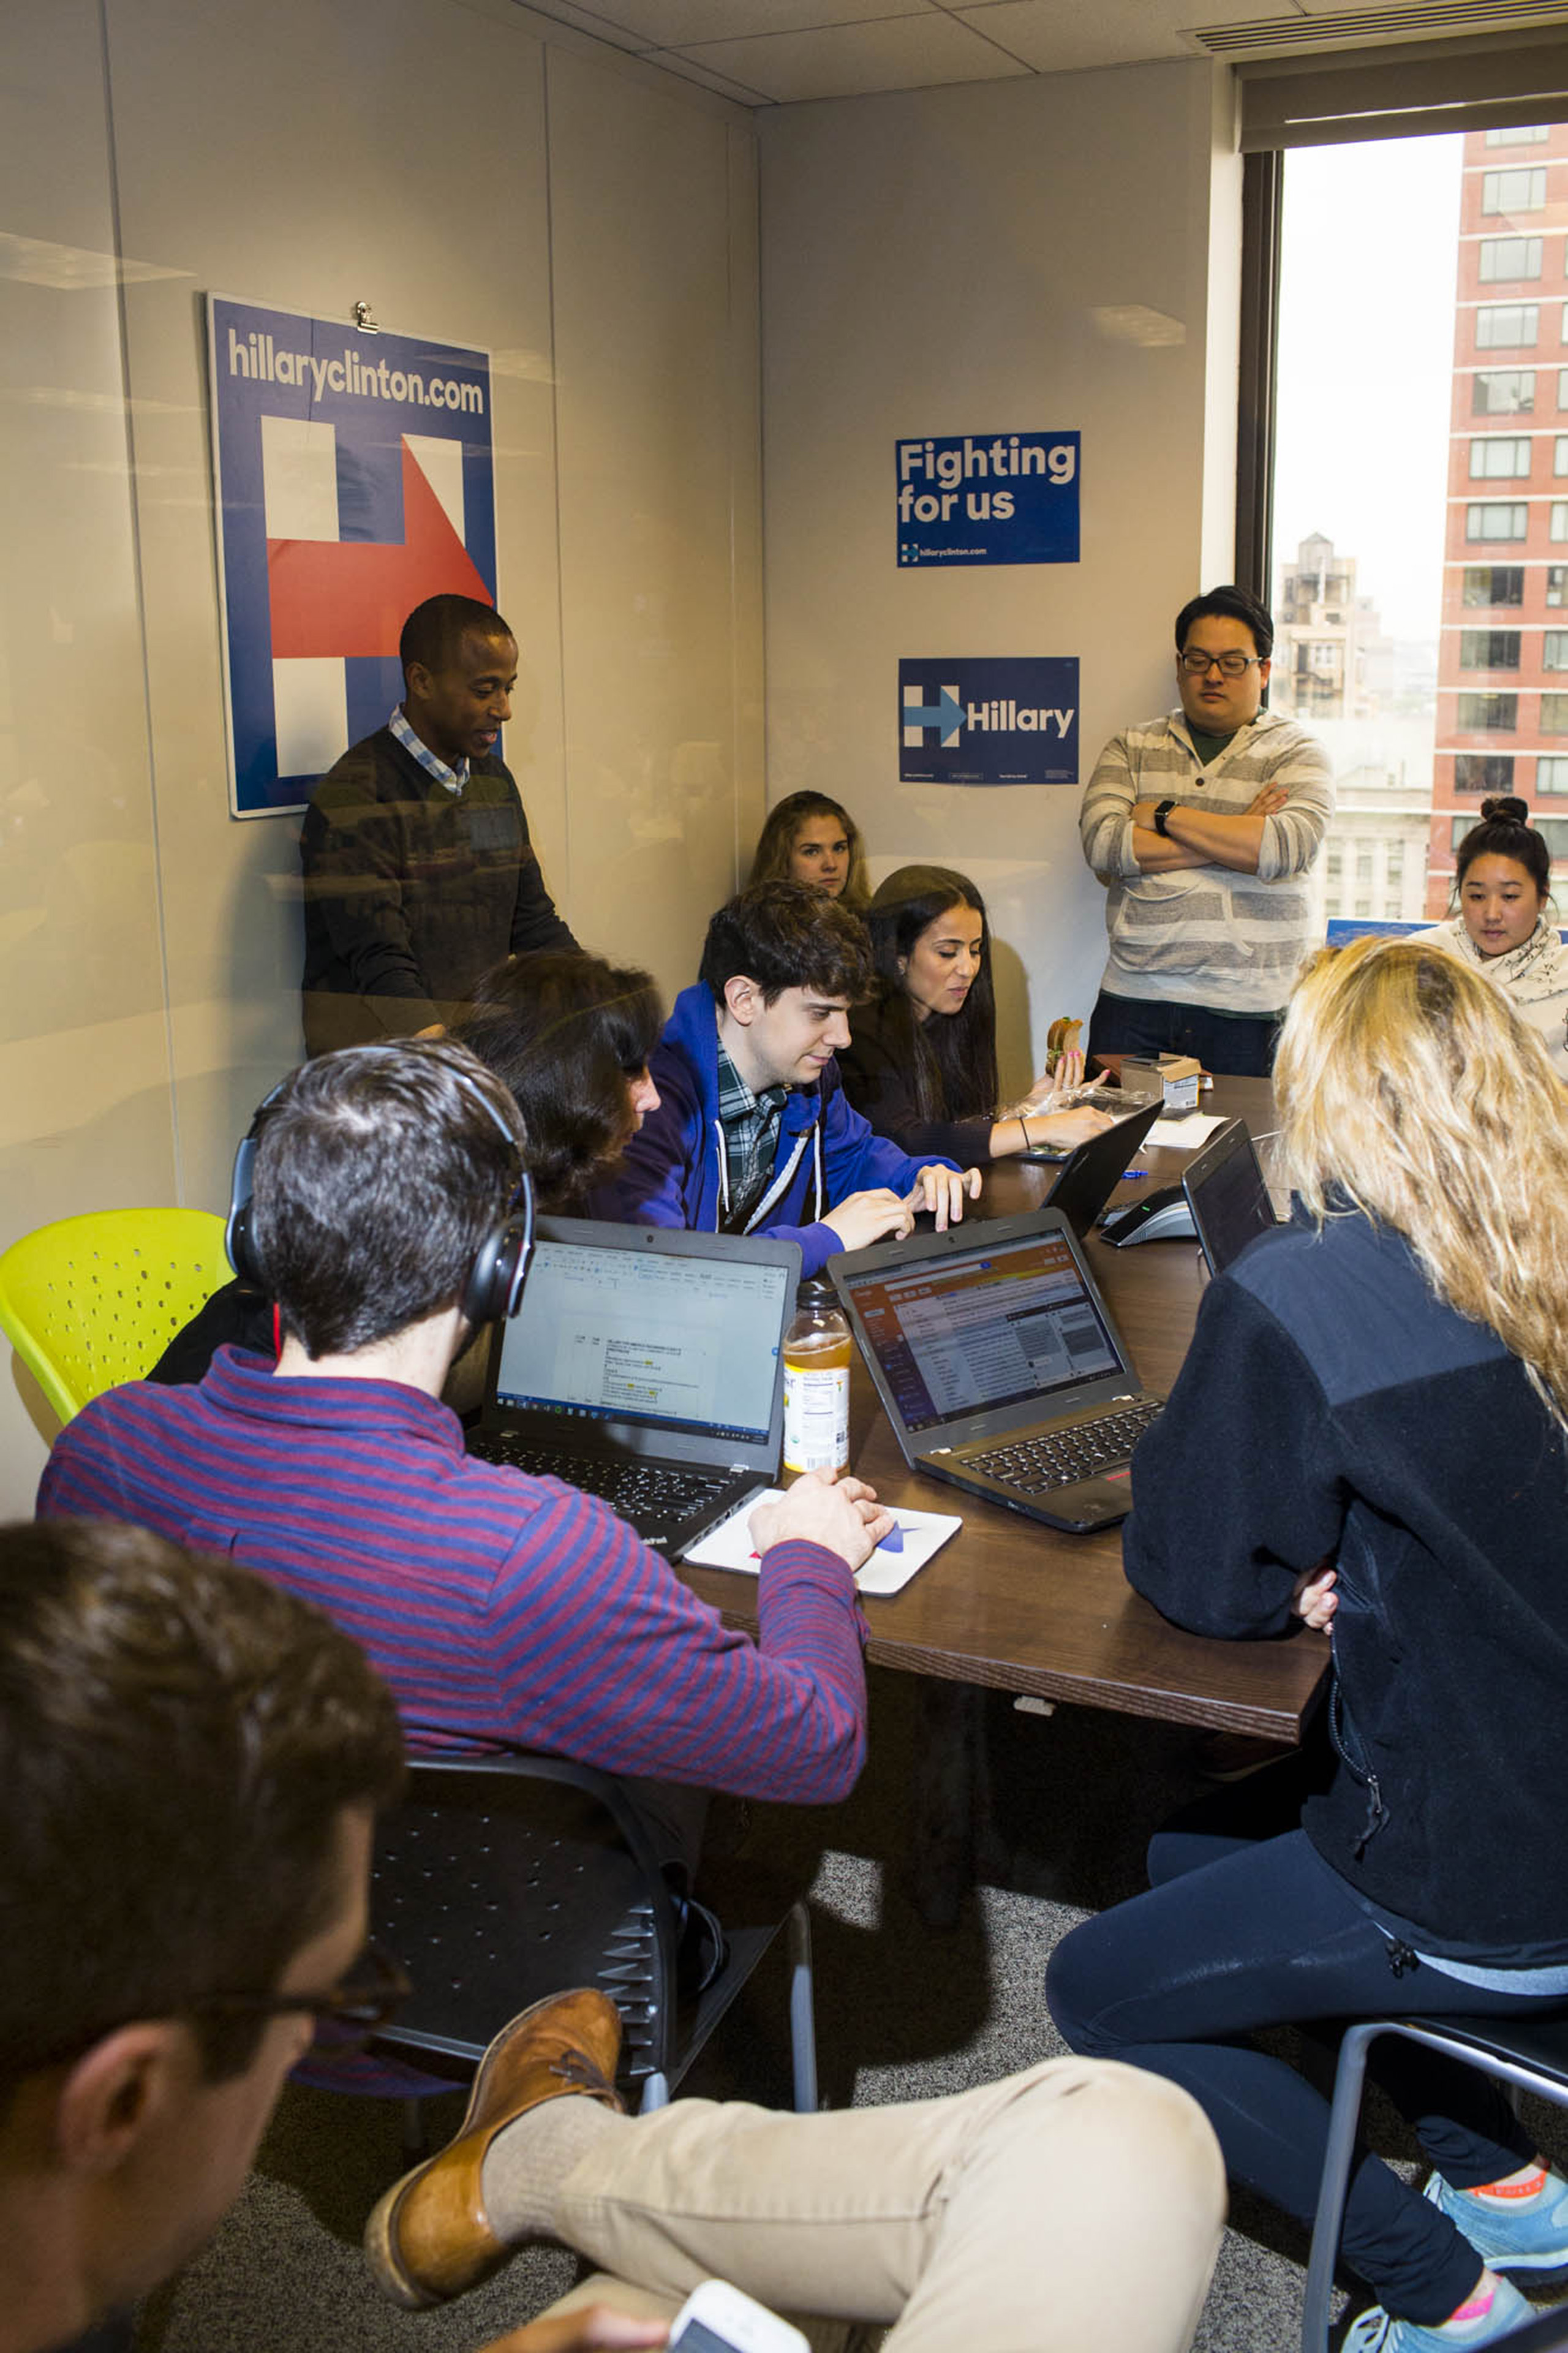 A meeting at the campaign headquarters of Hillary Clinton on May 24, 2016, in Brooklyn, NY.